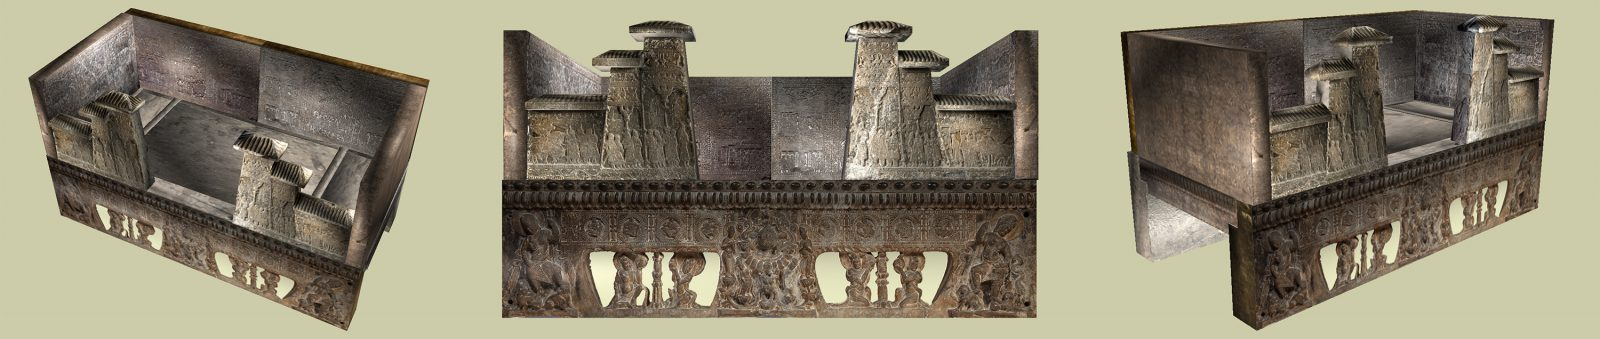 This reconstruction brings together the fragments of the Anyang funerary bed that are in collections across the world.